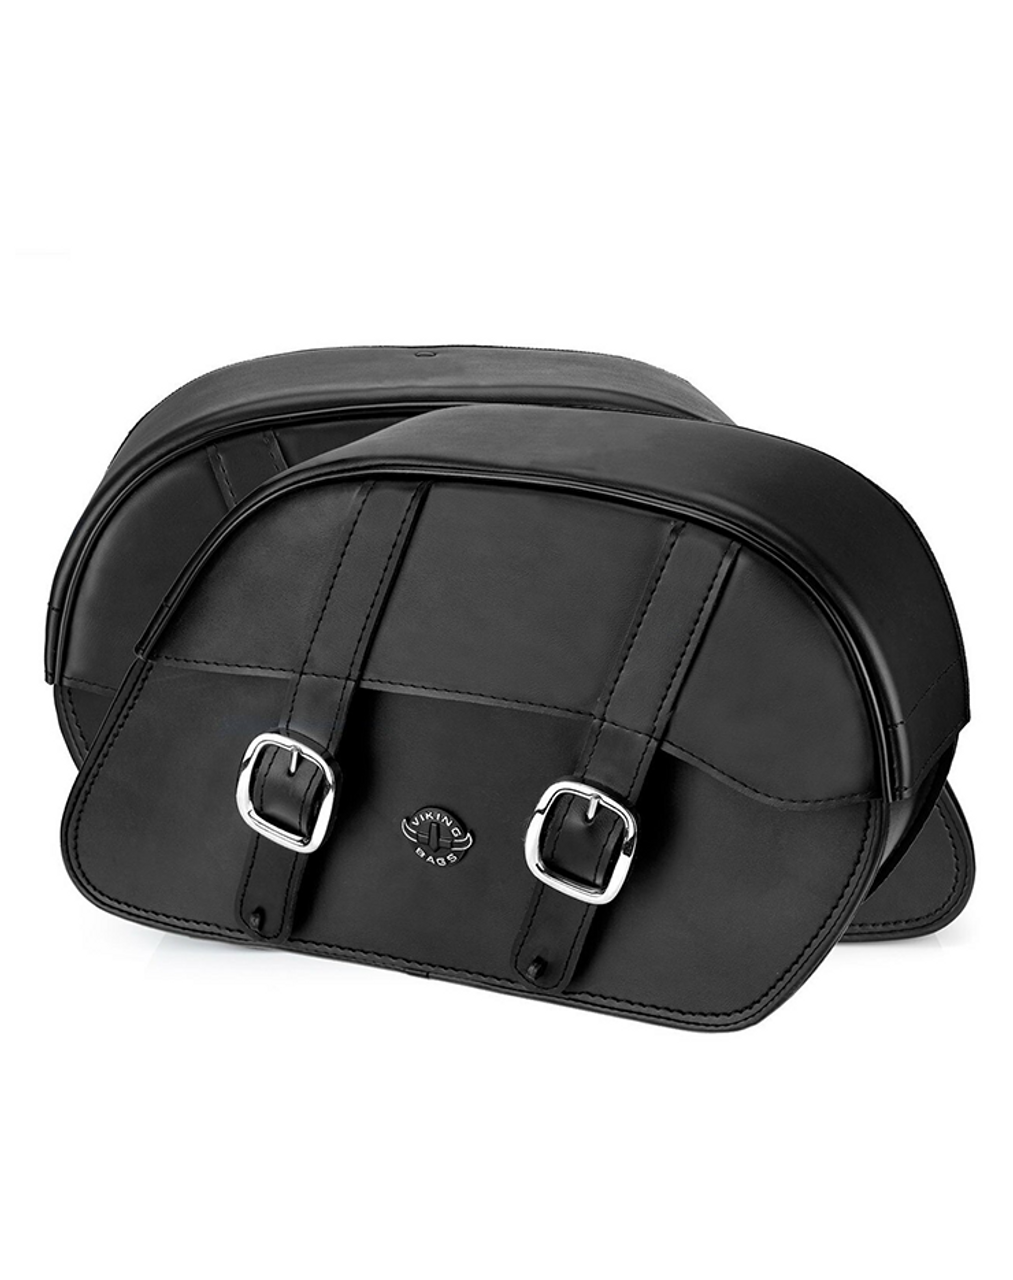 VikingBags Char Vital Medium Padlock Double Strap Leather Motorcycle Saddlebags For Harley Softail Breakout 114 FXBRS Both Bags View